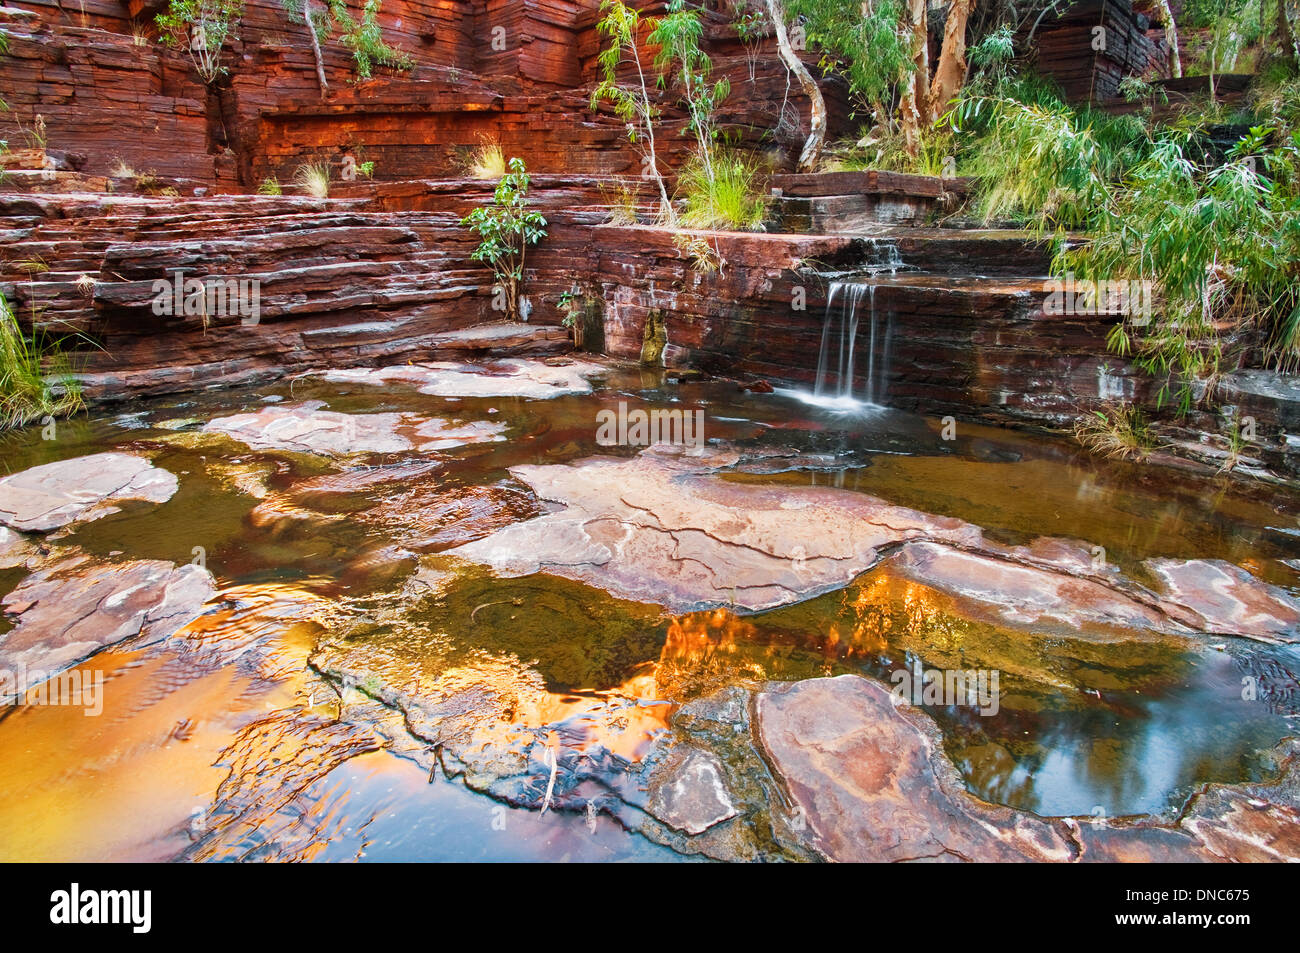 Small waterfall in Dales Gorge. - Stock Image